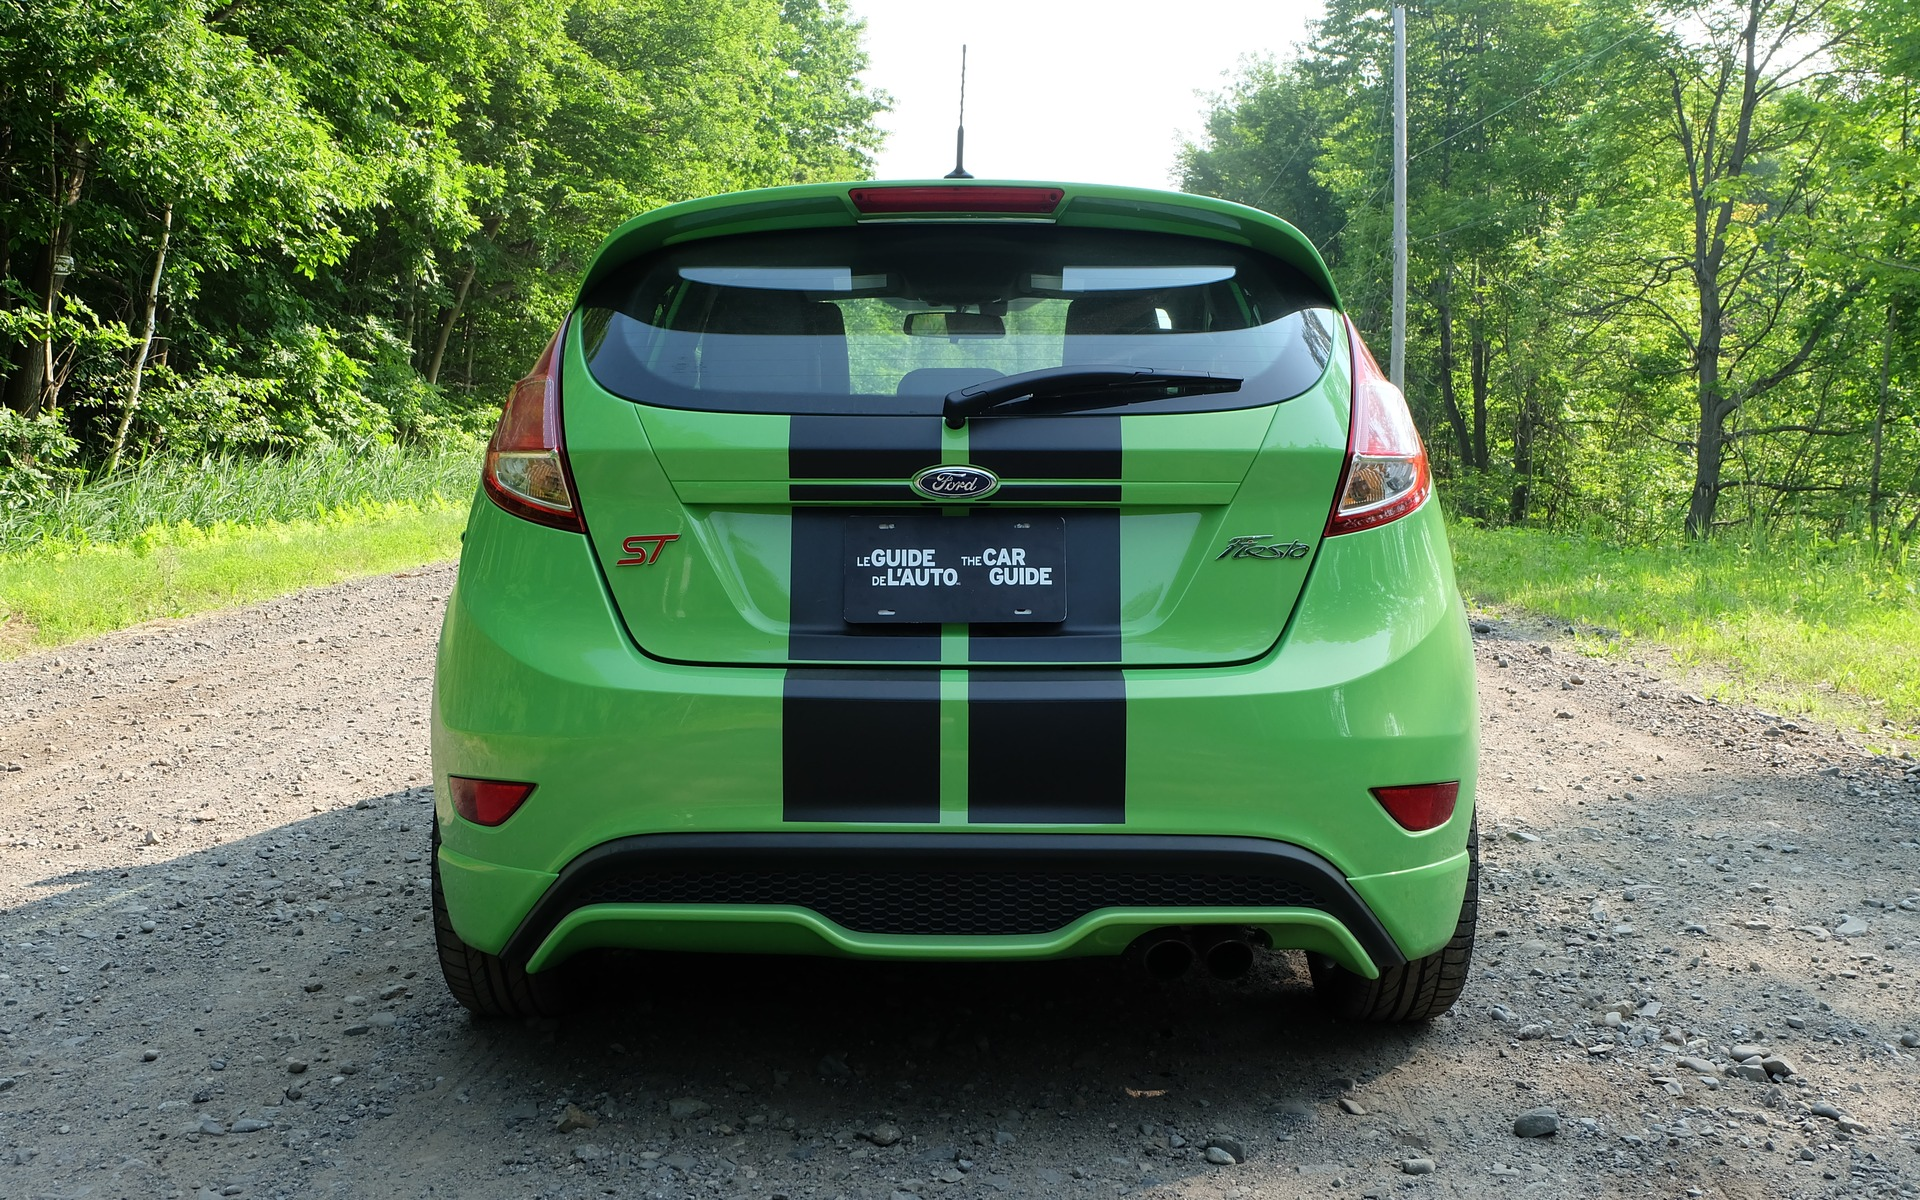 2015 Ford Fiesta St The Grass Is Greener Here 3 18